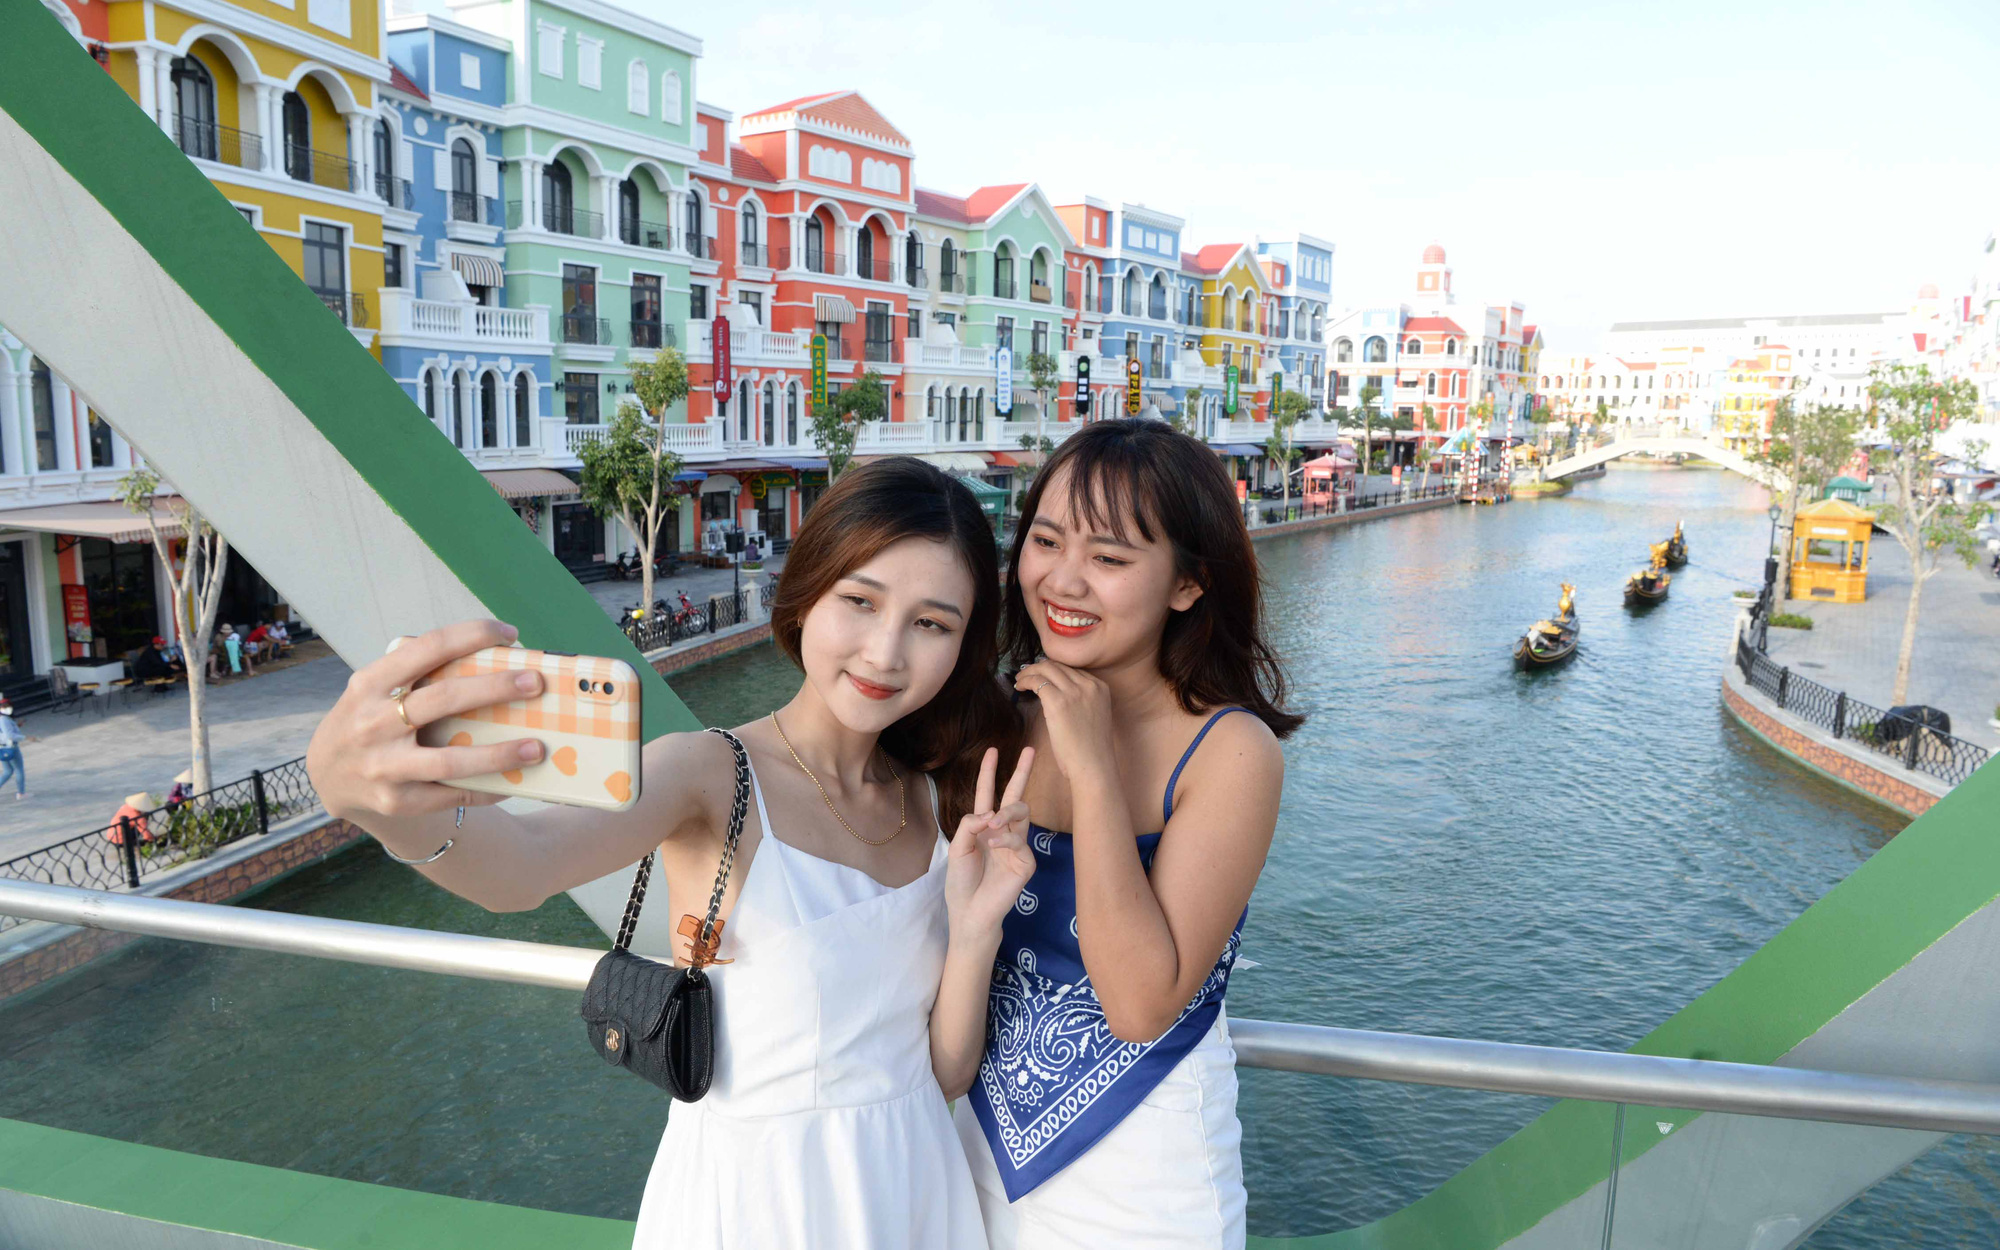 Women pose for a selfie at Phu Quoc United Center in Phu Quoc Island, Kien Giang Province, Vietnam. Photo: T.T.D. / Tuoi Tre